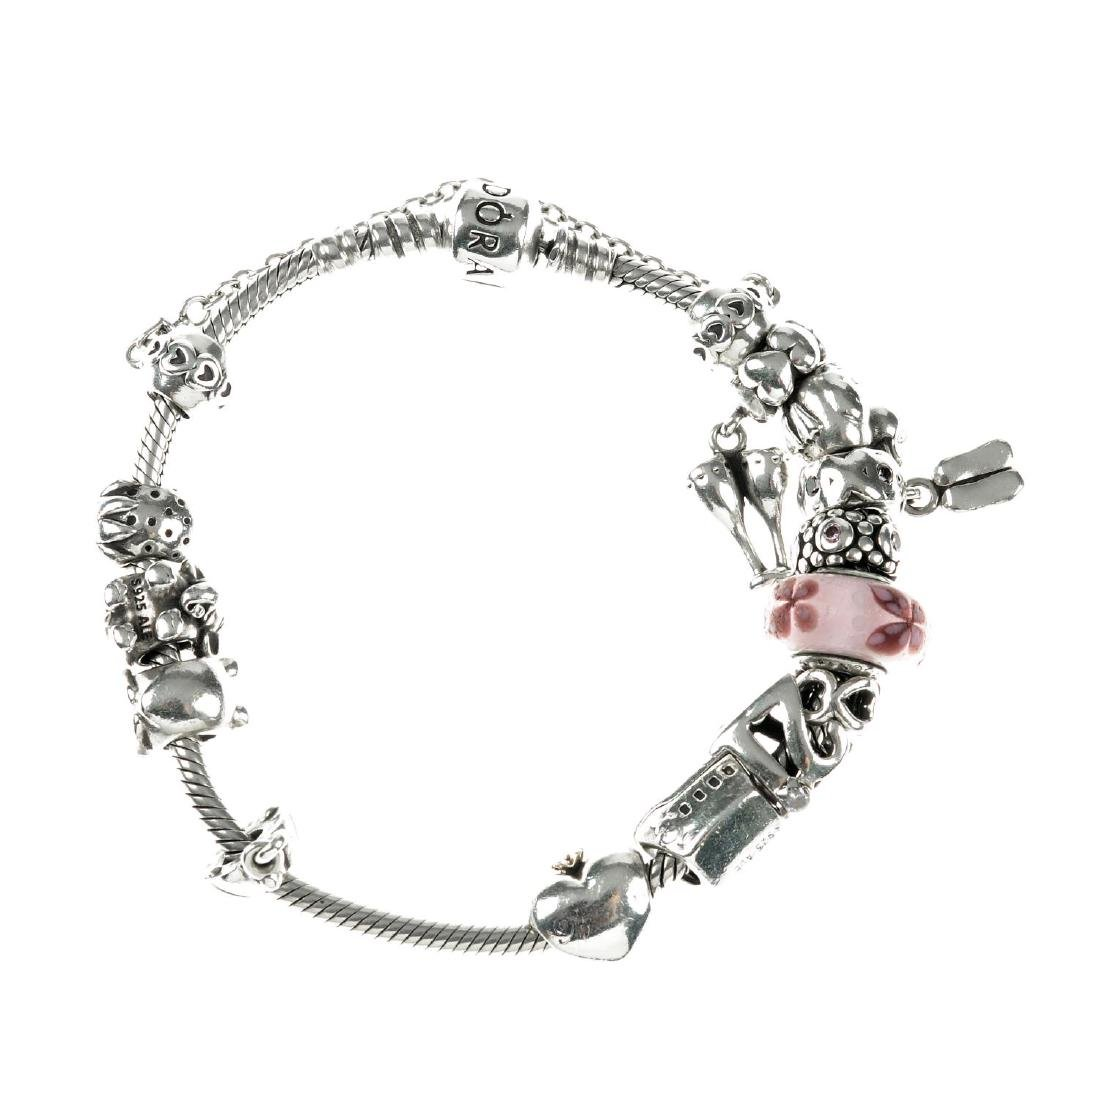 PANDORA - a charm bracelet with charms. The snake chain